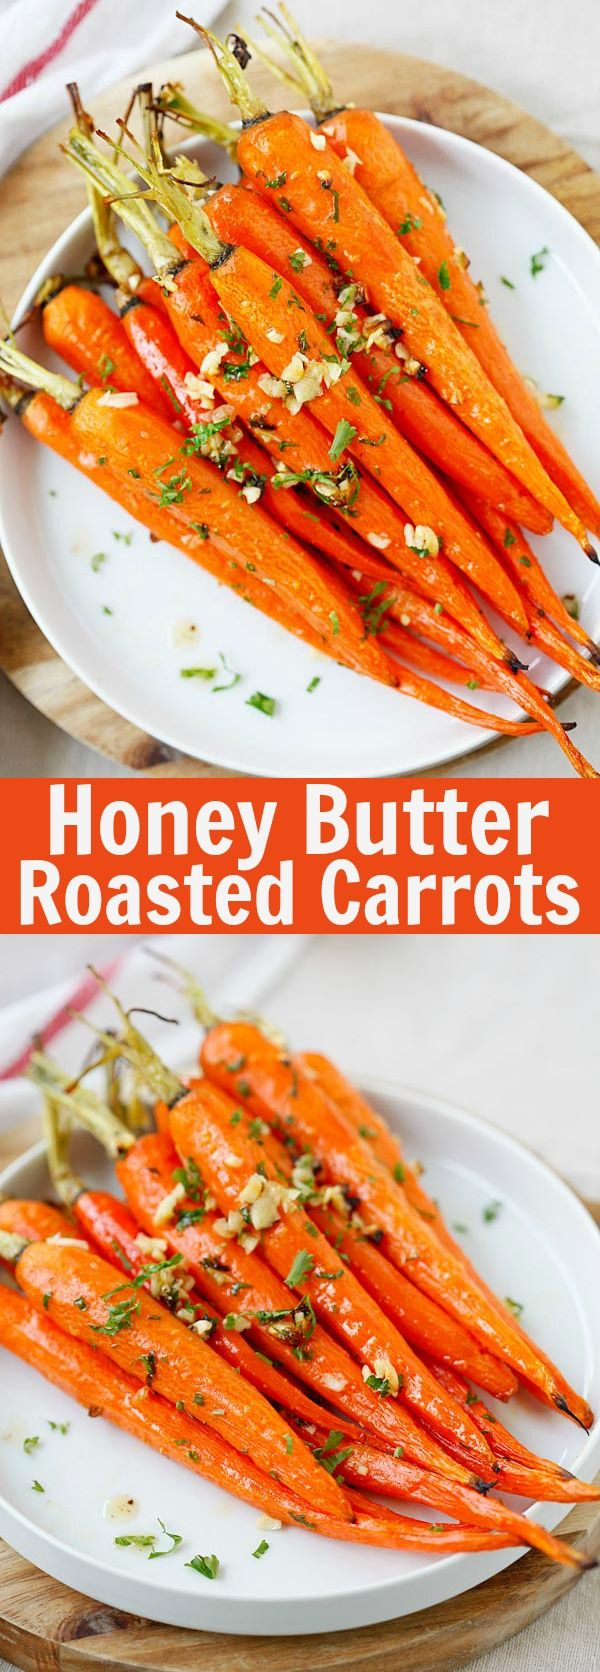 Honey Butter Roasted Carrots – the most delicious and tender roasted carrots, with honey, butter and garlic. So easy and takes 10 mins to prep | rasamalaysia.com